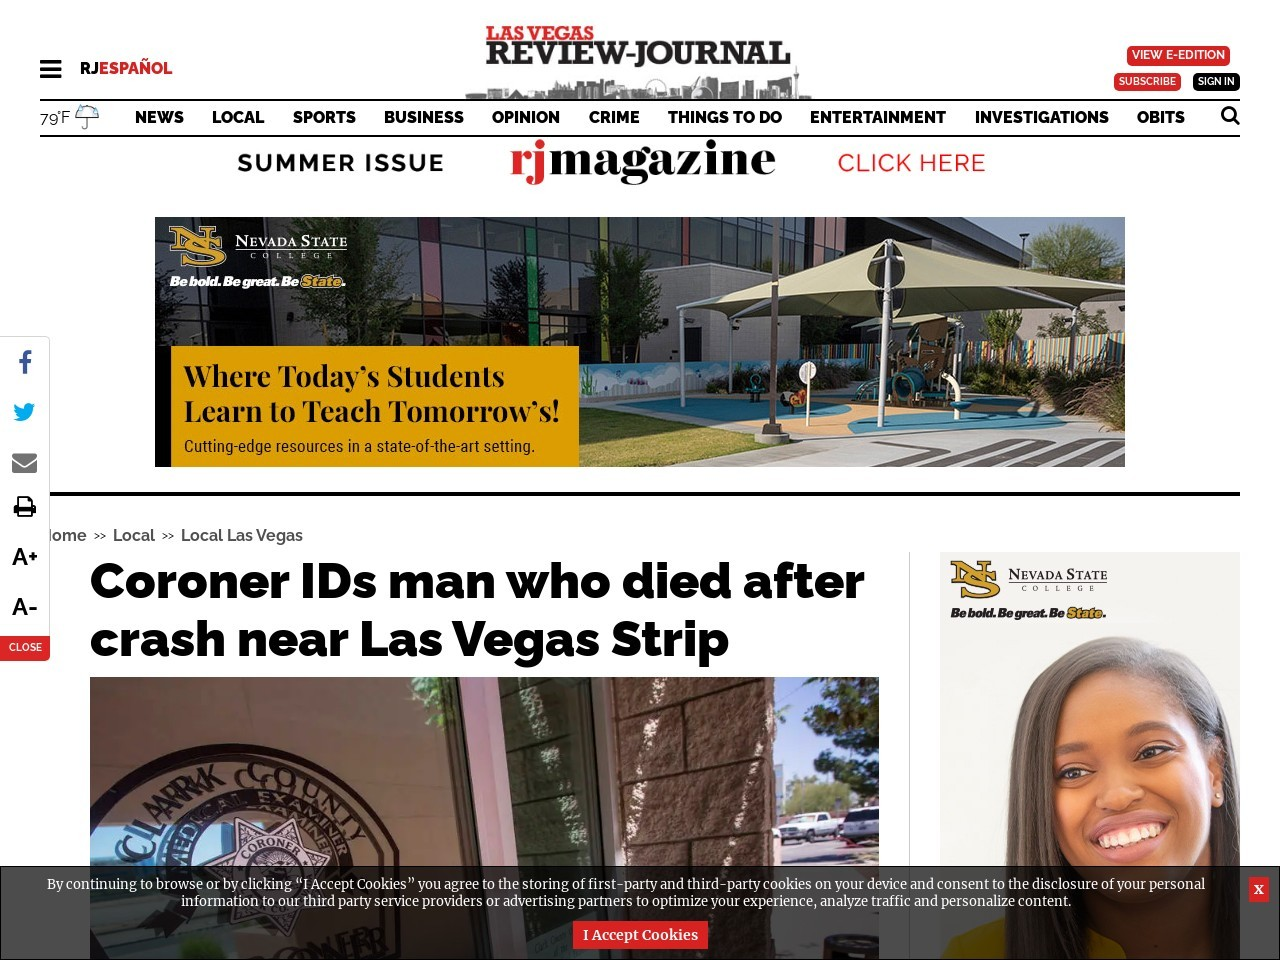 Coroner IDs man who died after crash near Las Vegas Strip